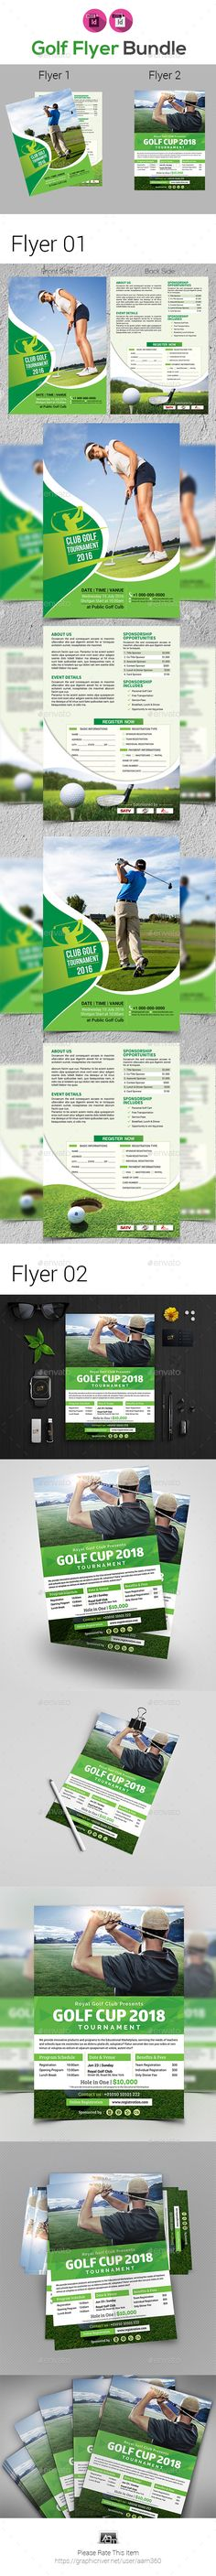 Charity Event Flyer Template Event flyer templates, Event flyers - golf tournament flyer template